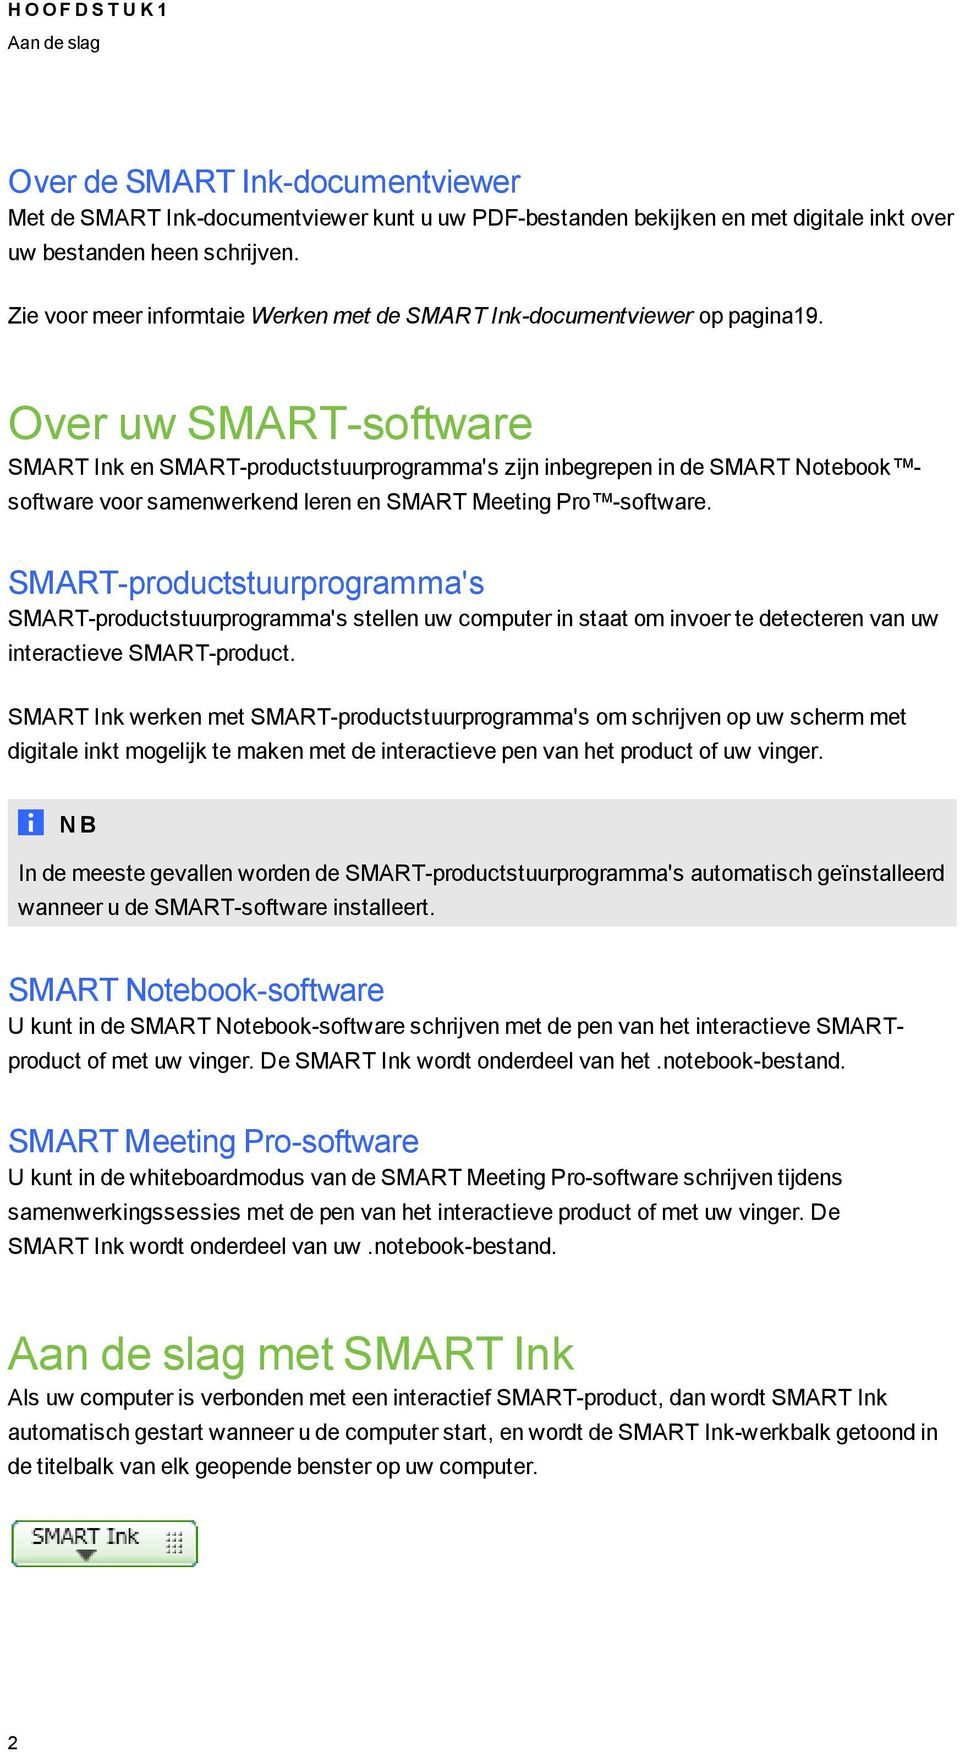 Over uw SMART-software SMART Ink en SMART-productstuurproramma's zijn inberepen in de SMART Notebook software voor samenwerkend leren en SMART Meetin Pro -software.